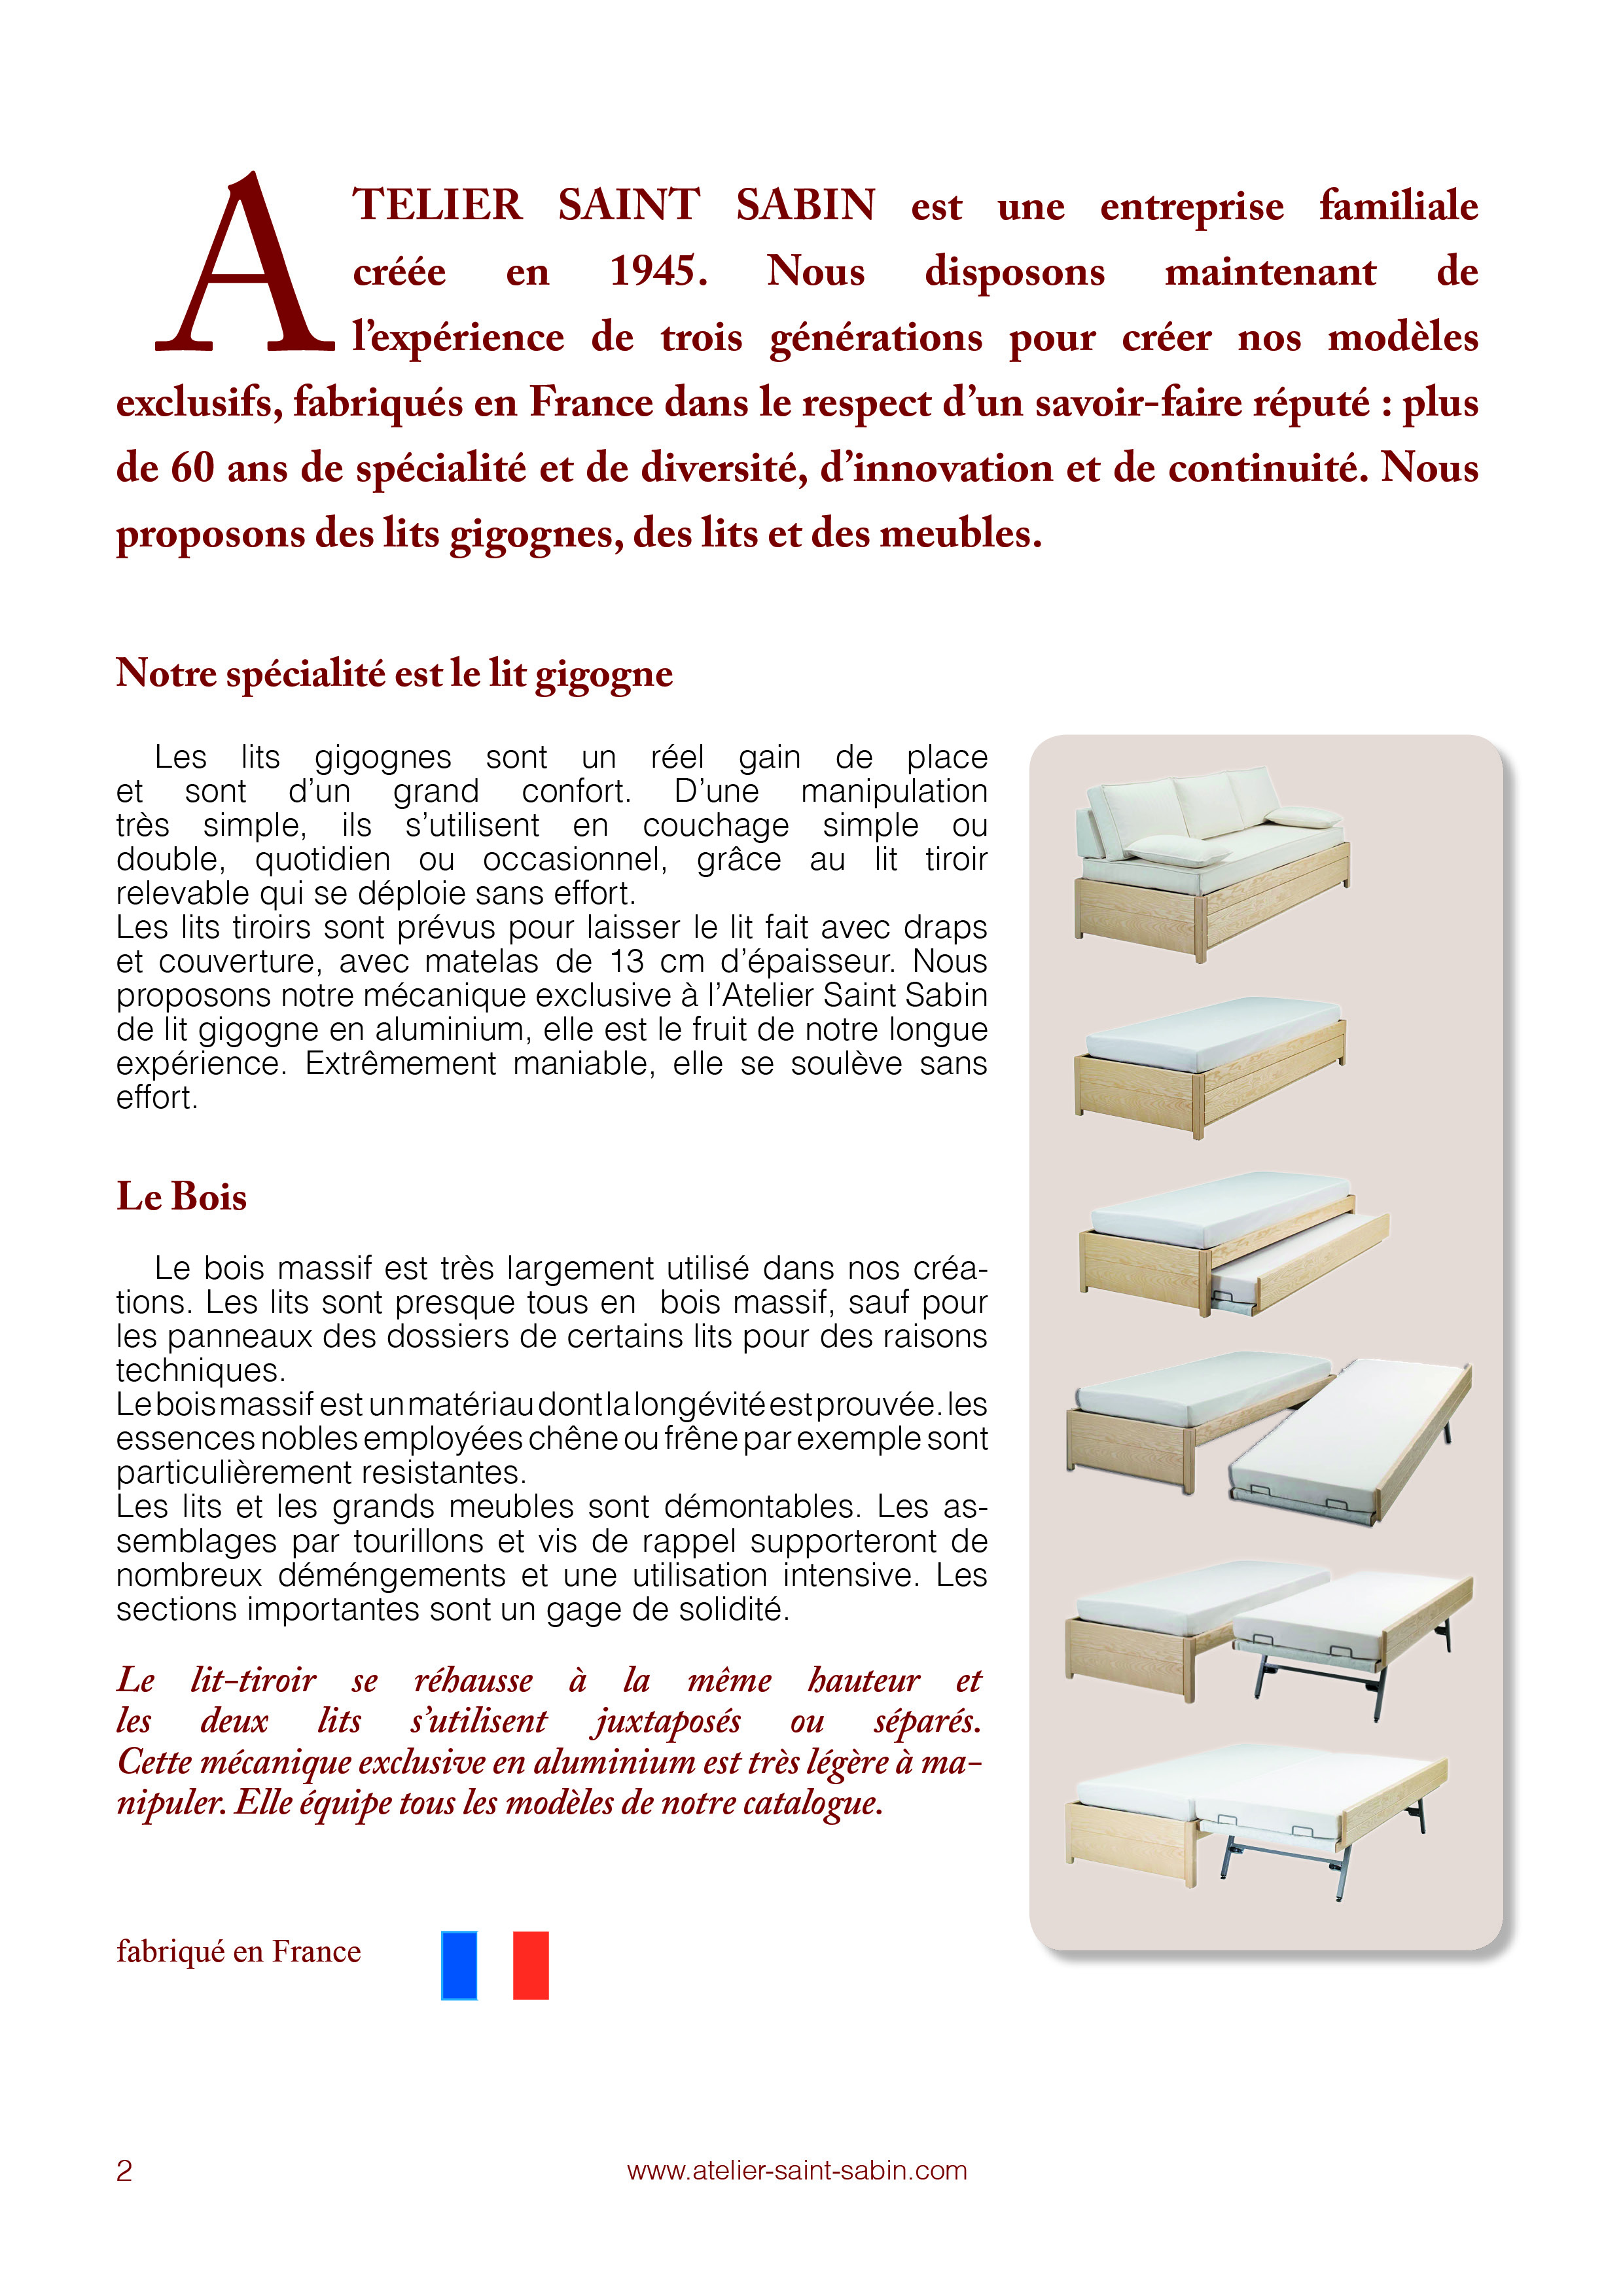 Catallogues pour un magasin de literie